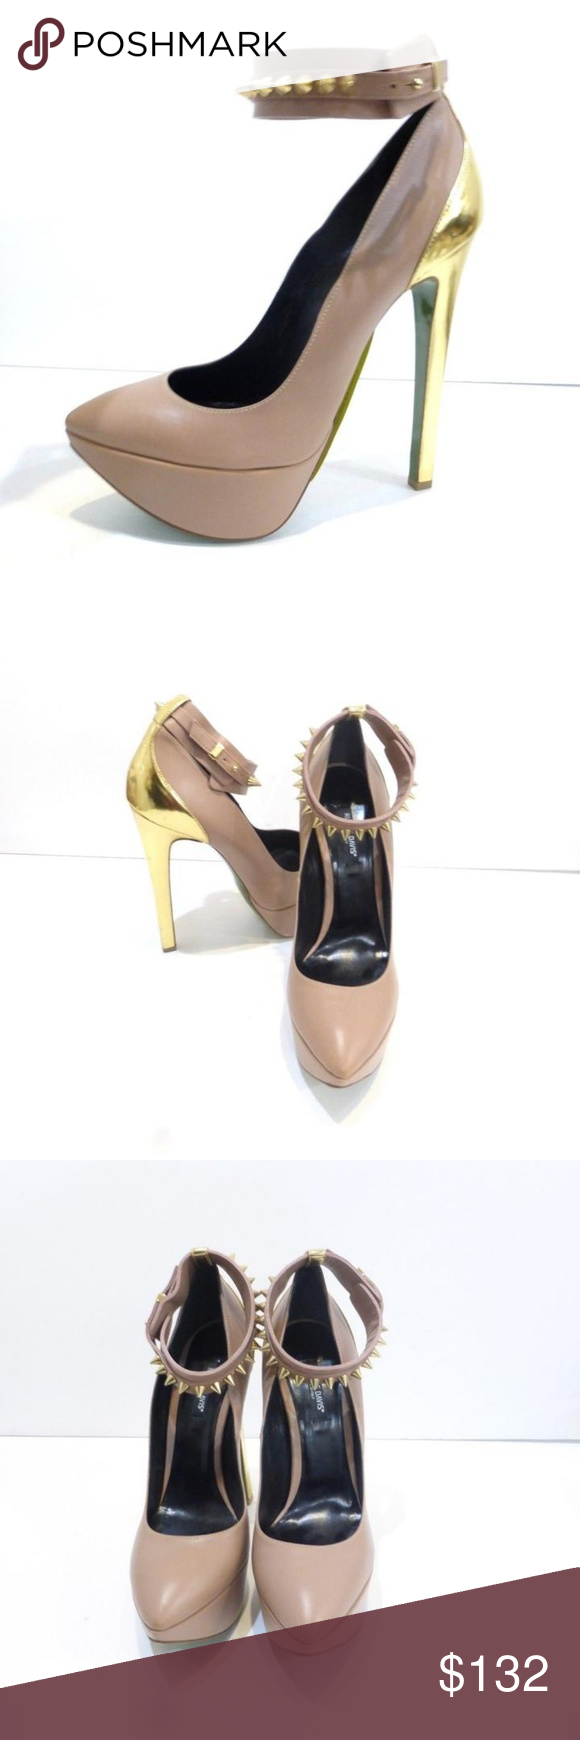 Ruthie Davis Blush Leather Pumps RUTHIE DAVISMade in ItalyNew without the box! Super-sexy Ruthie Davis blush leather platform pumps with a sexy ankle strap with stud detail and a gold leather heel!Ruthie DavisMade in ItalyNew, never wornSize 8.5Euro 38.5 (on shoe)Taupe/blush leather upperGold stud detailGold leather heel: 6